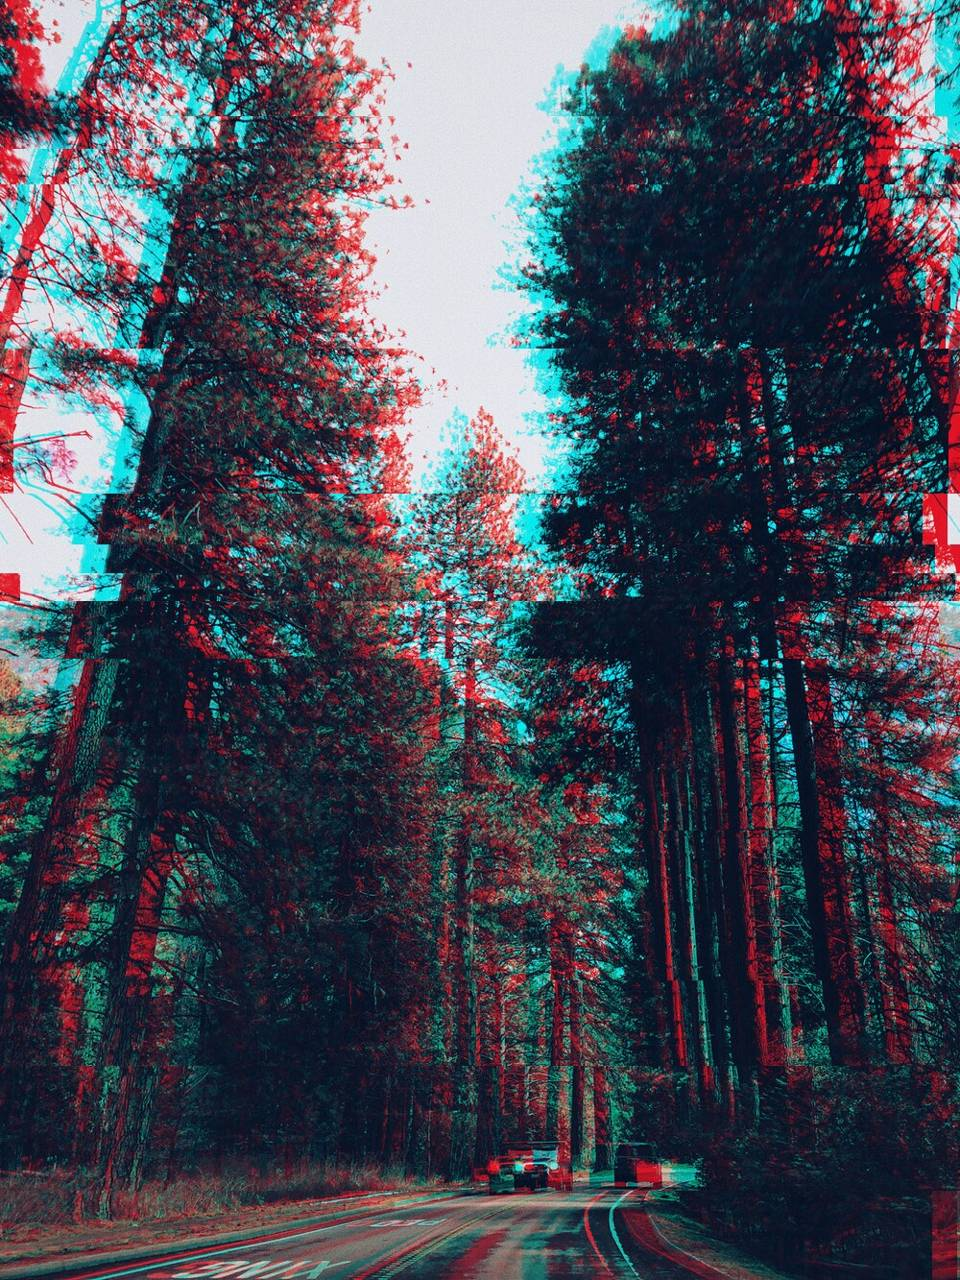 GliTched ForEst